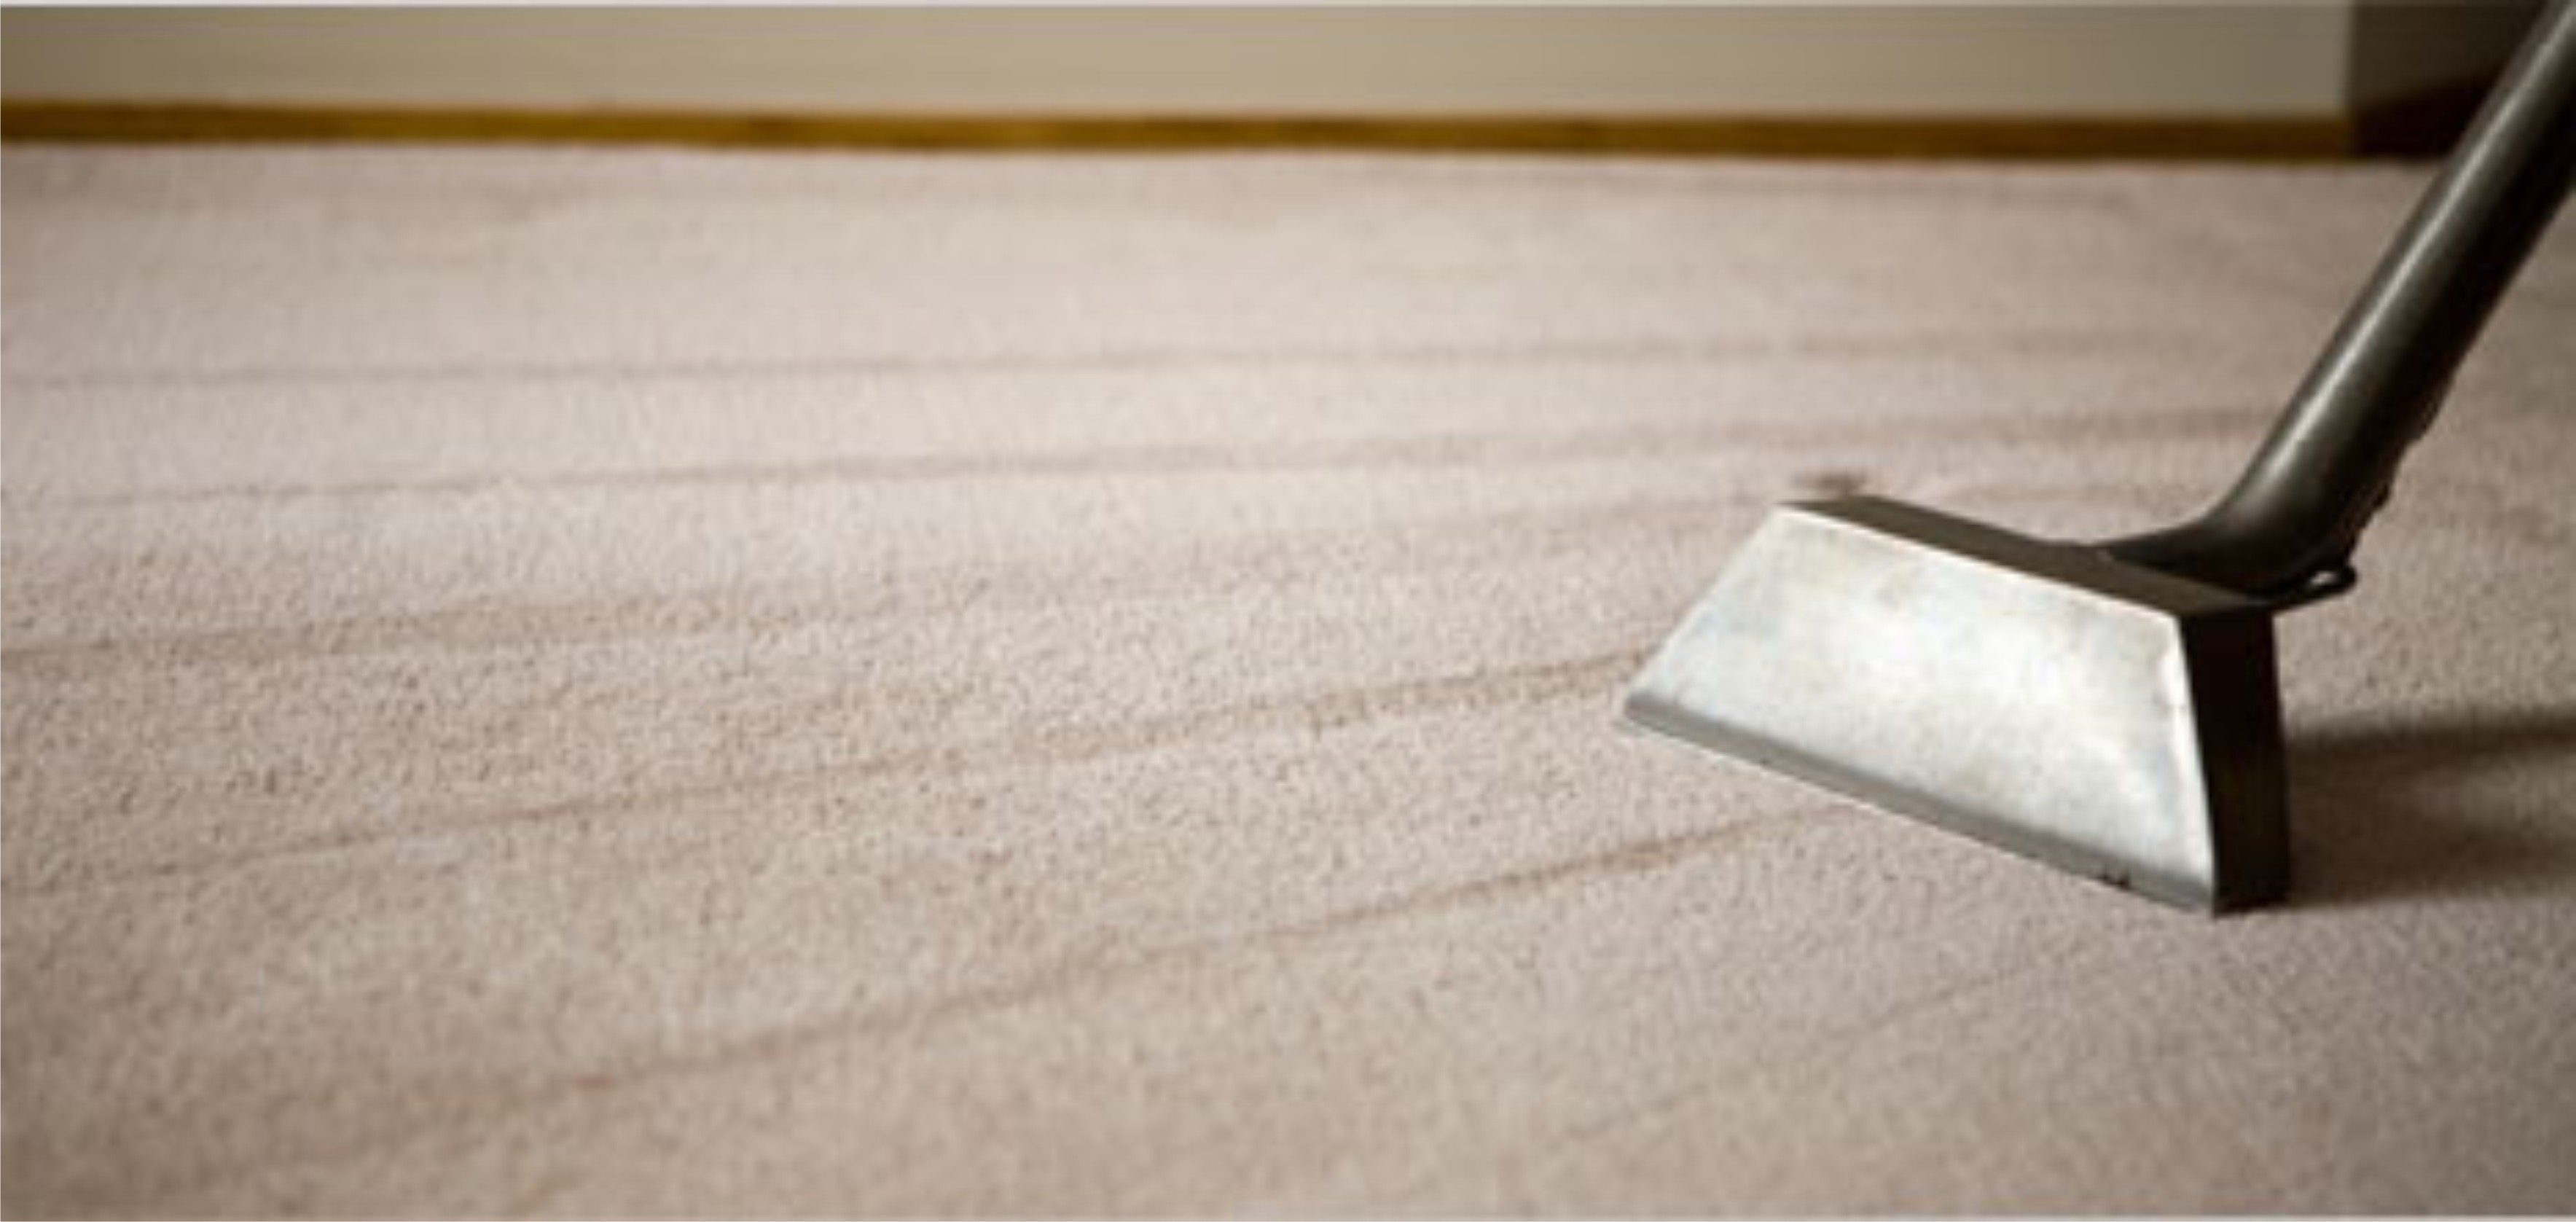 Carpet Cleaning The Difference Between Dry Cleaning And Steam Cleaning Carpet